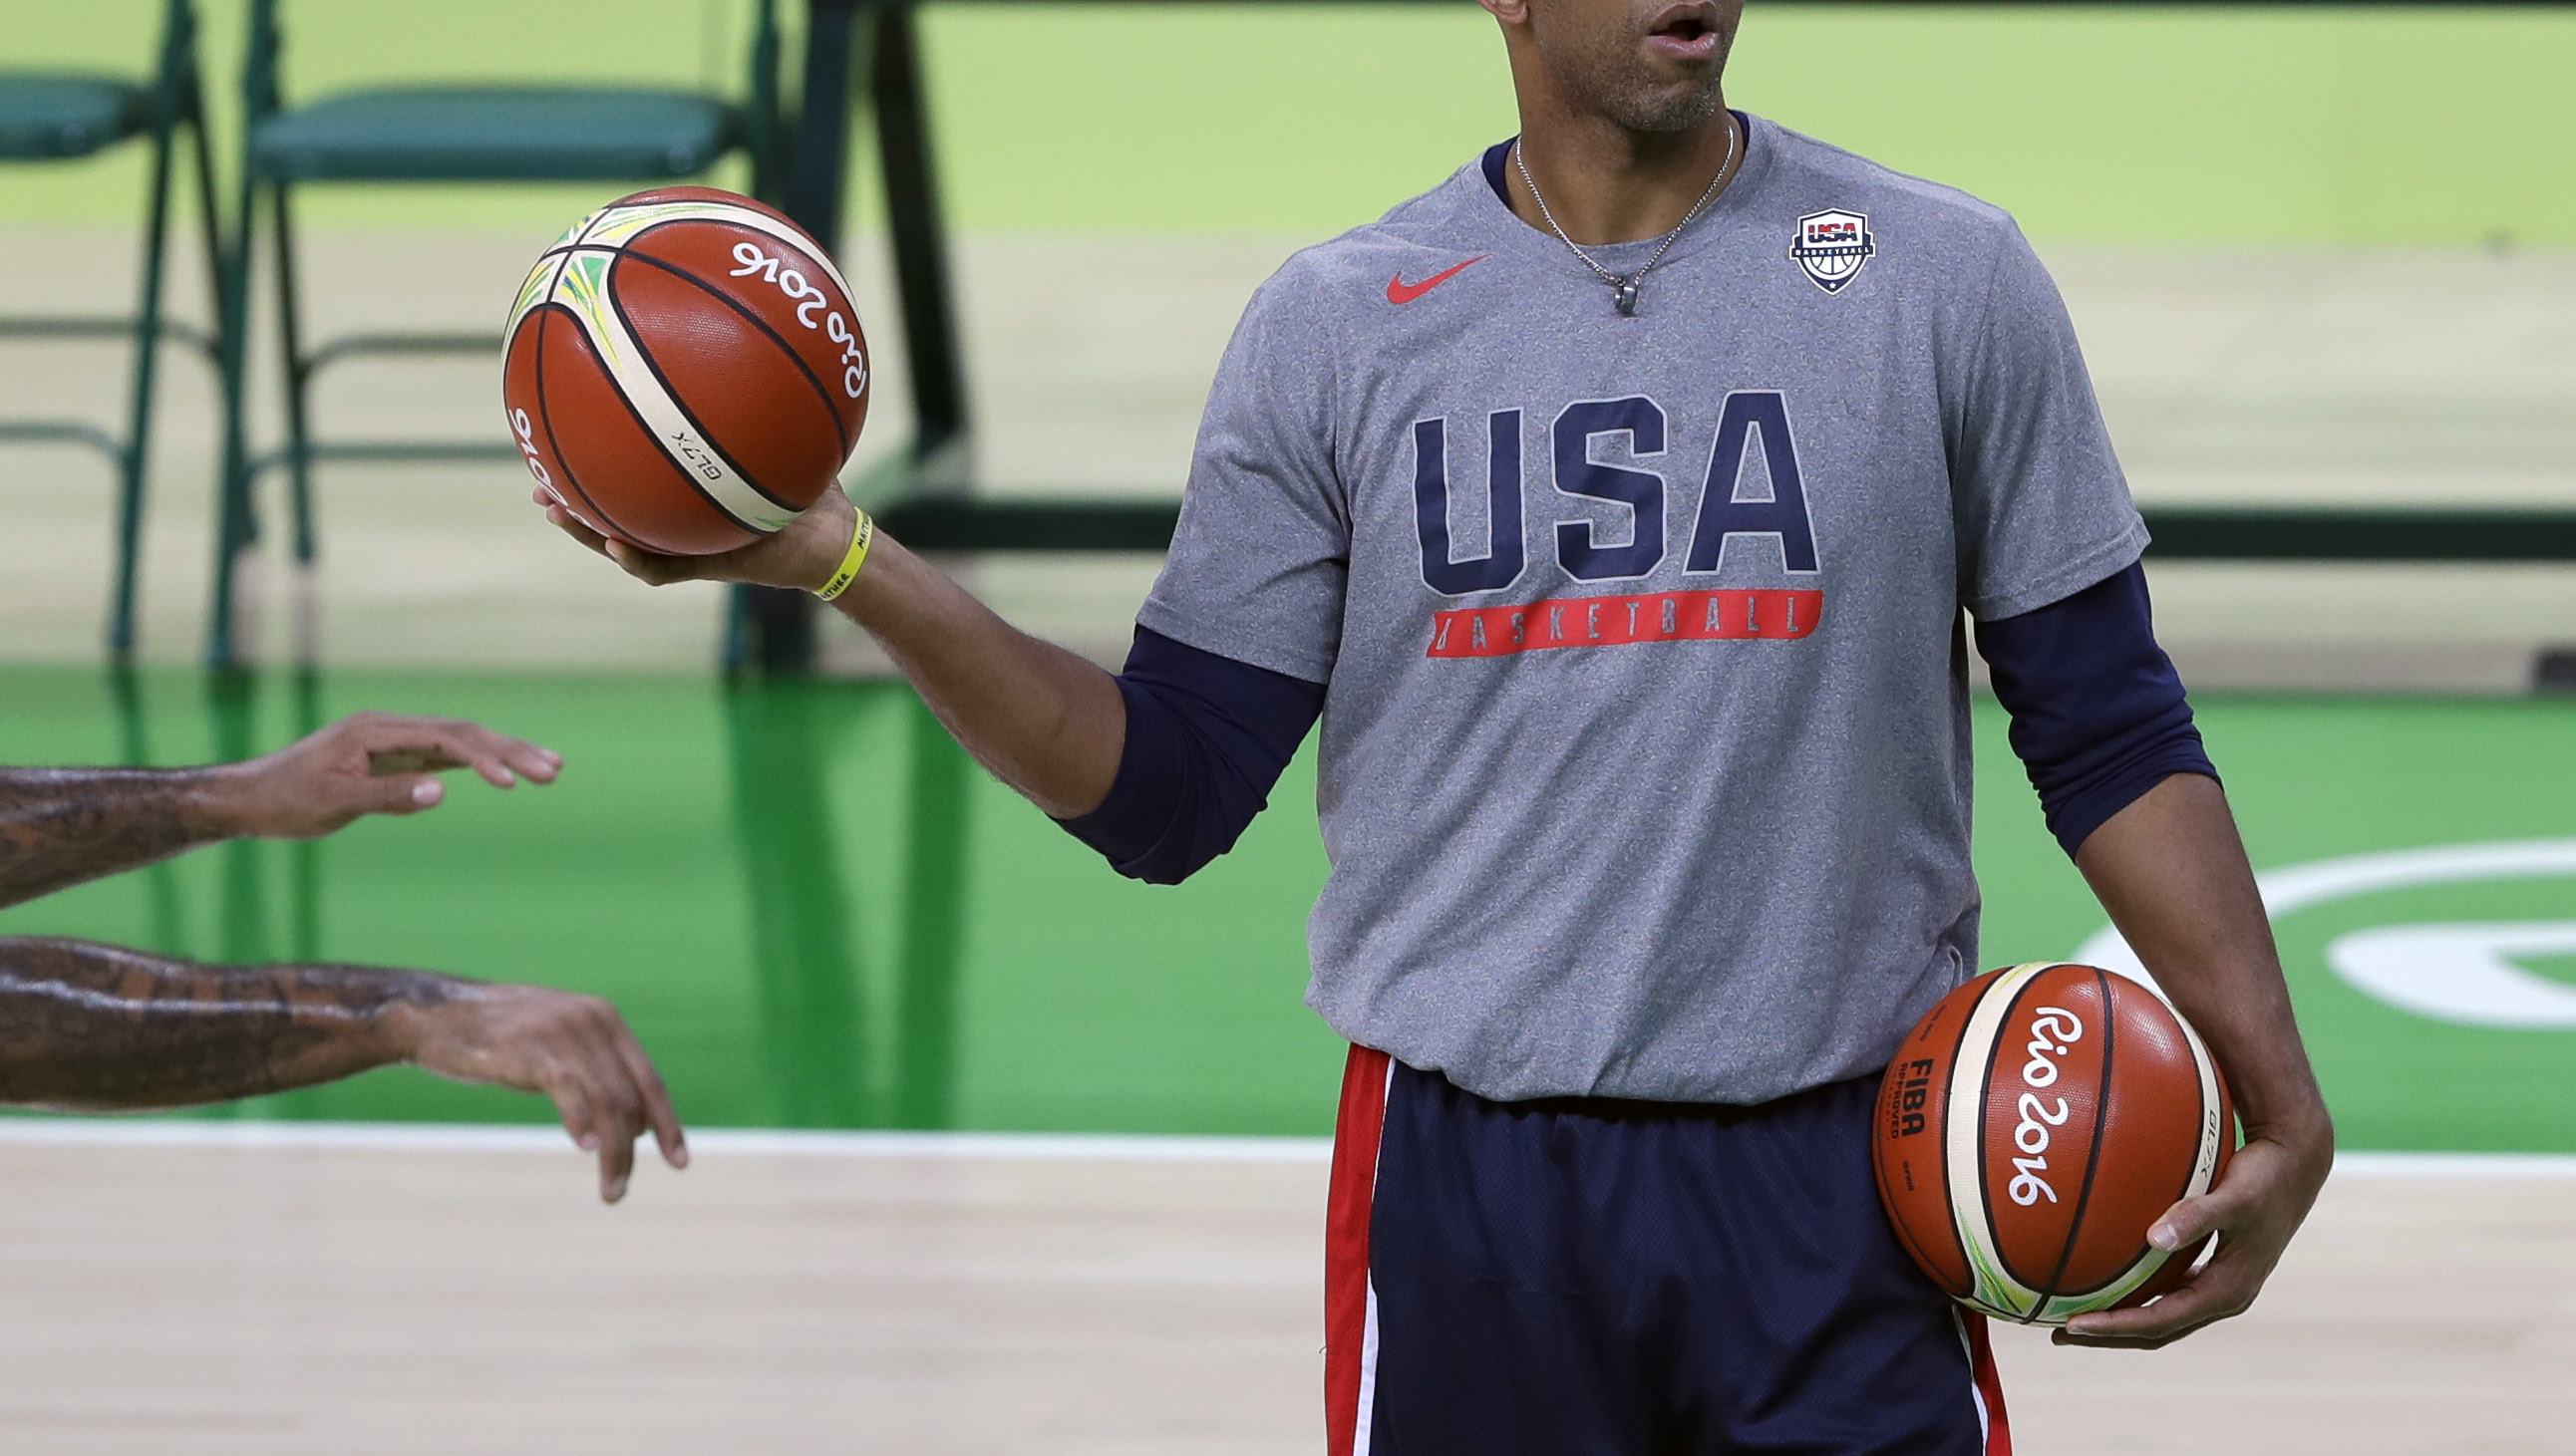 FILE - In this Thursday, Aug. 4, 2016 file photo, United States assistant coach Monty Williams feeds balls to Carmelo Anthony, out of frame left, during a basketball practice session for the 2016 Summer Olympics in Rio de Janeiro, Brazil. Without his wife